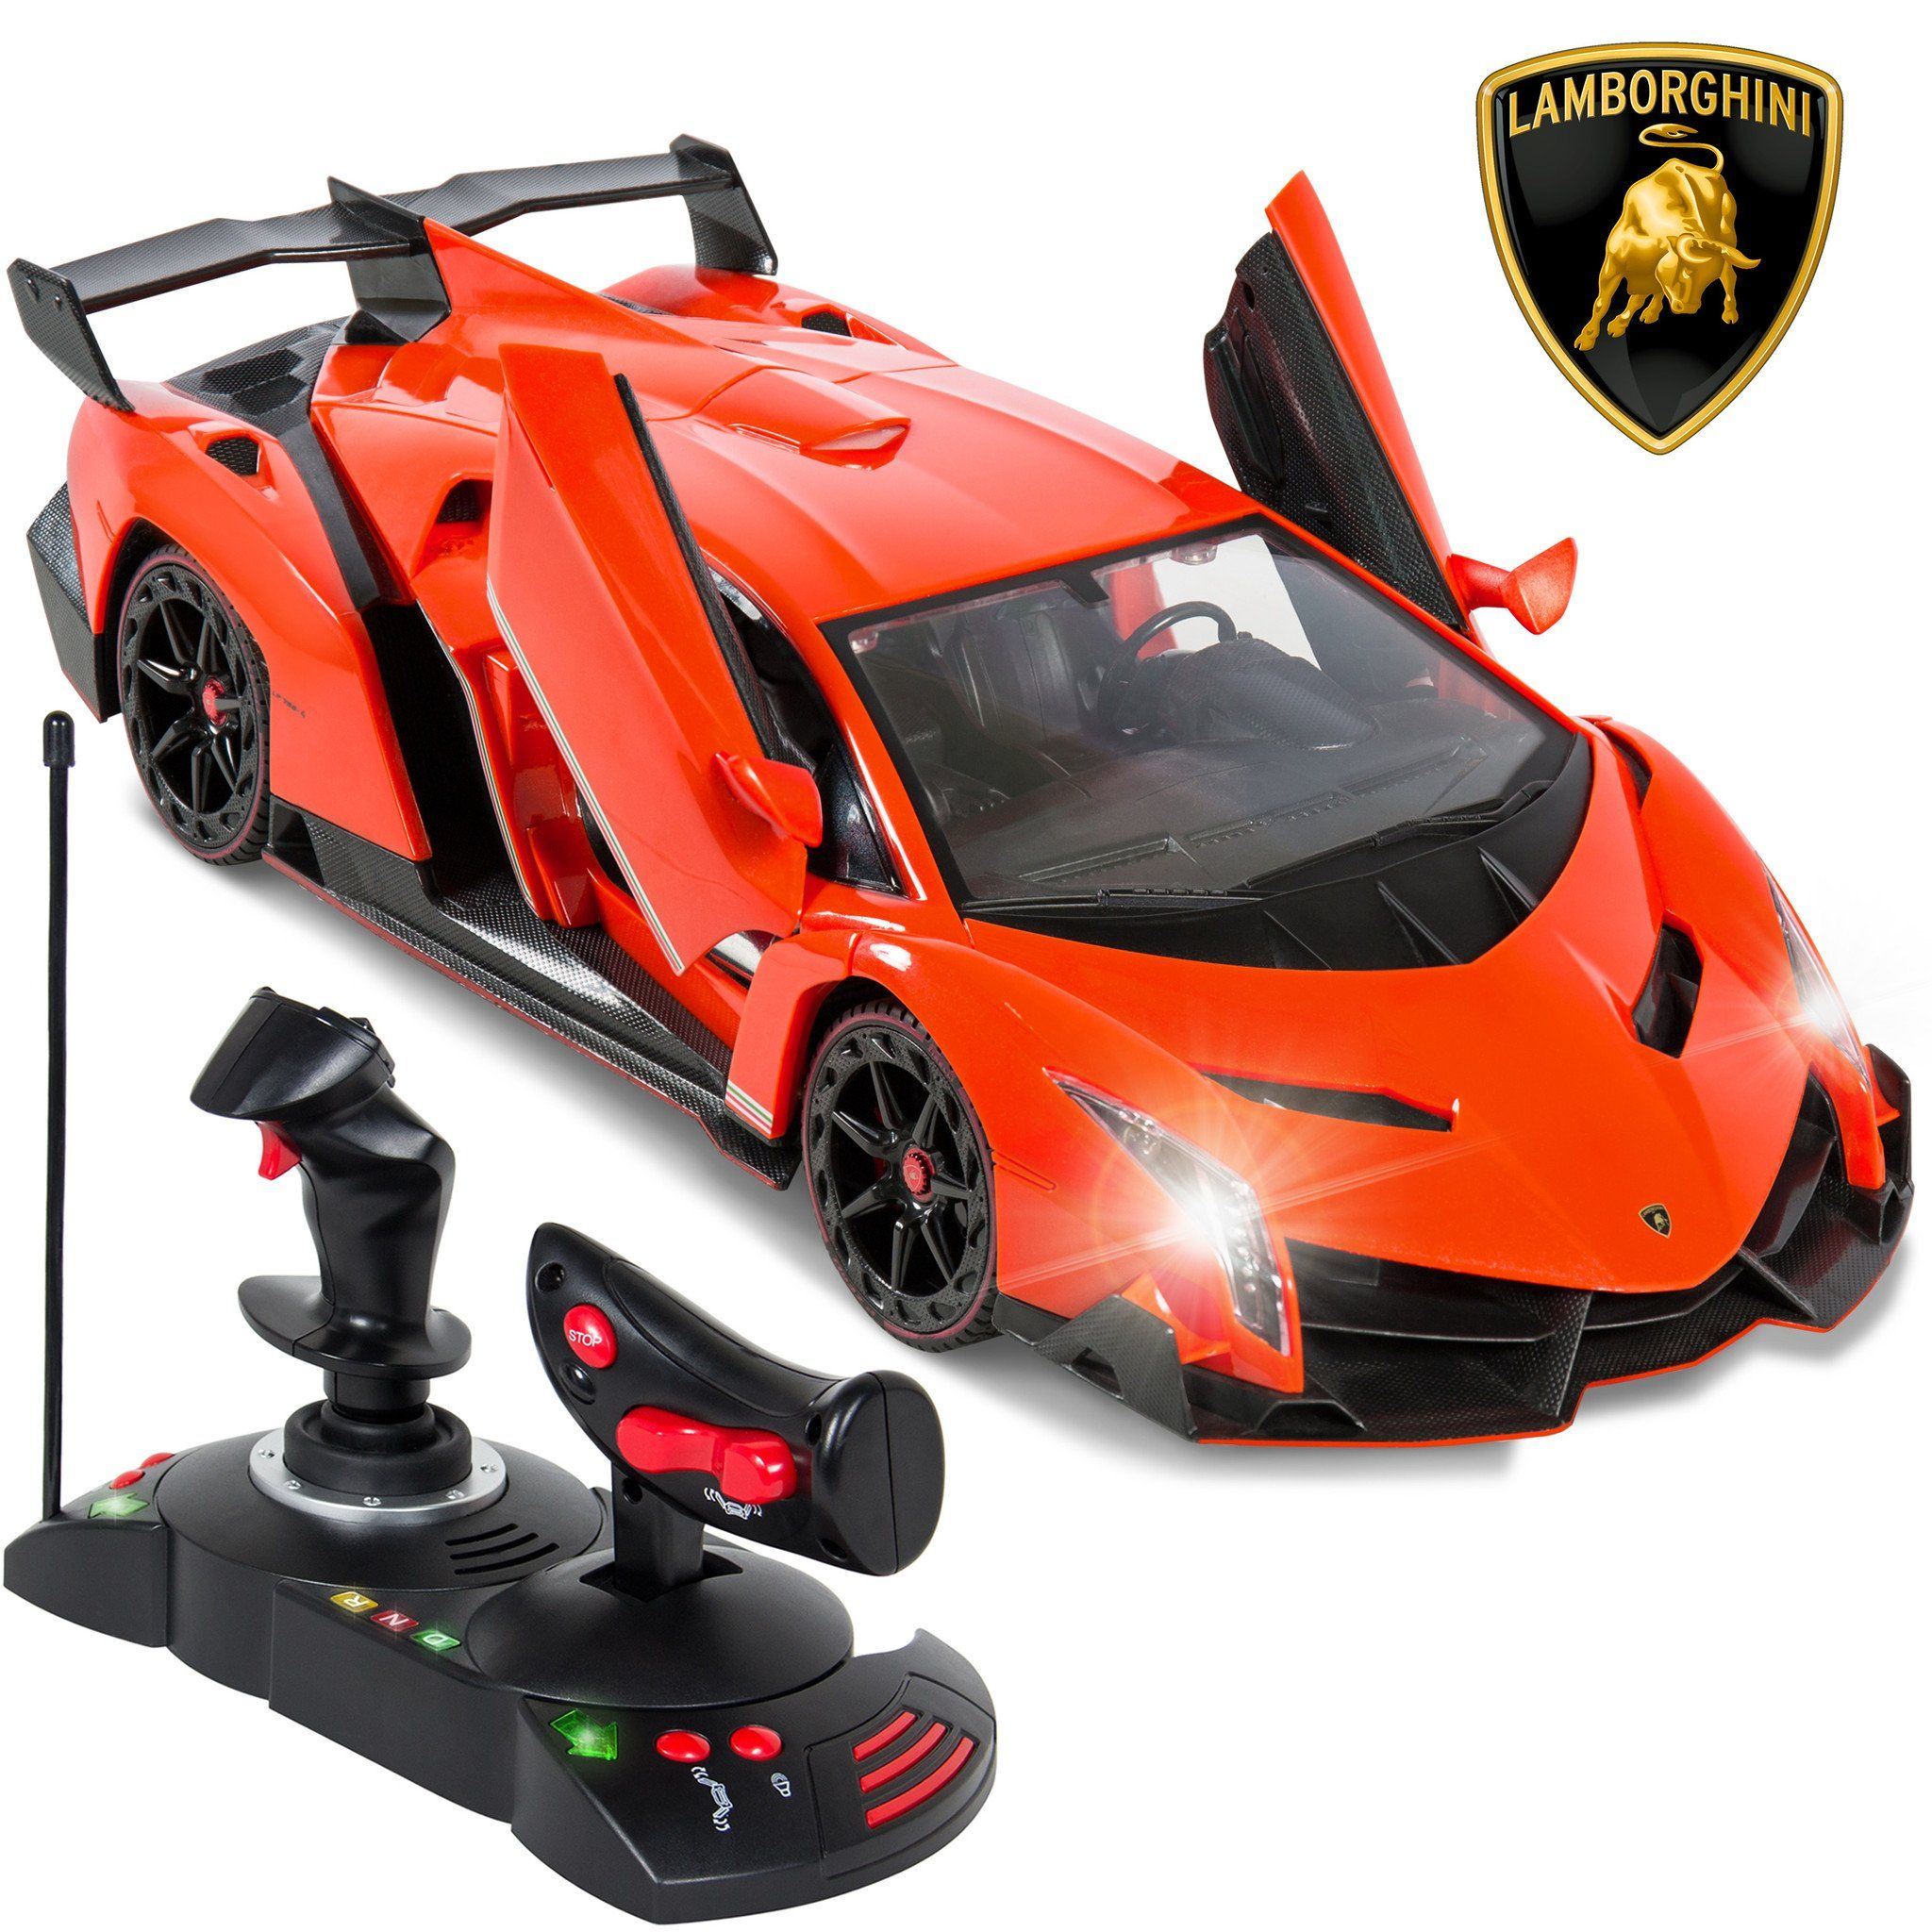 Introducing The Most Luxurious Rc Car On The Sidewalk Vroom Vroom Rc Cars For Sale Remote Control Cars Lamborghini Veneno